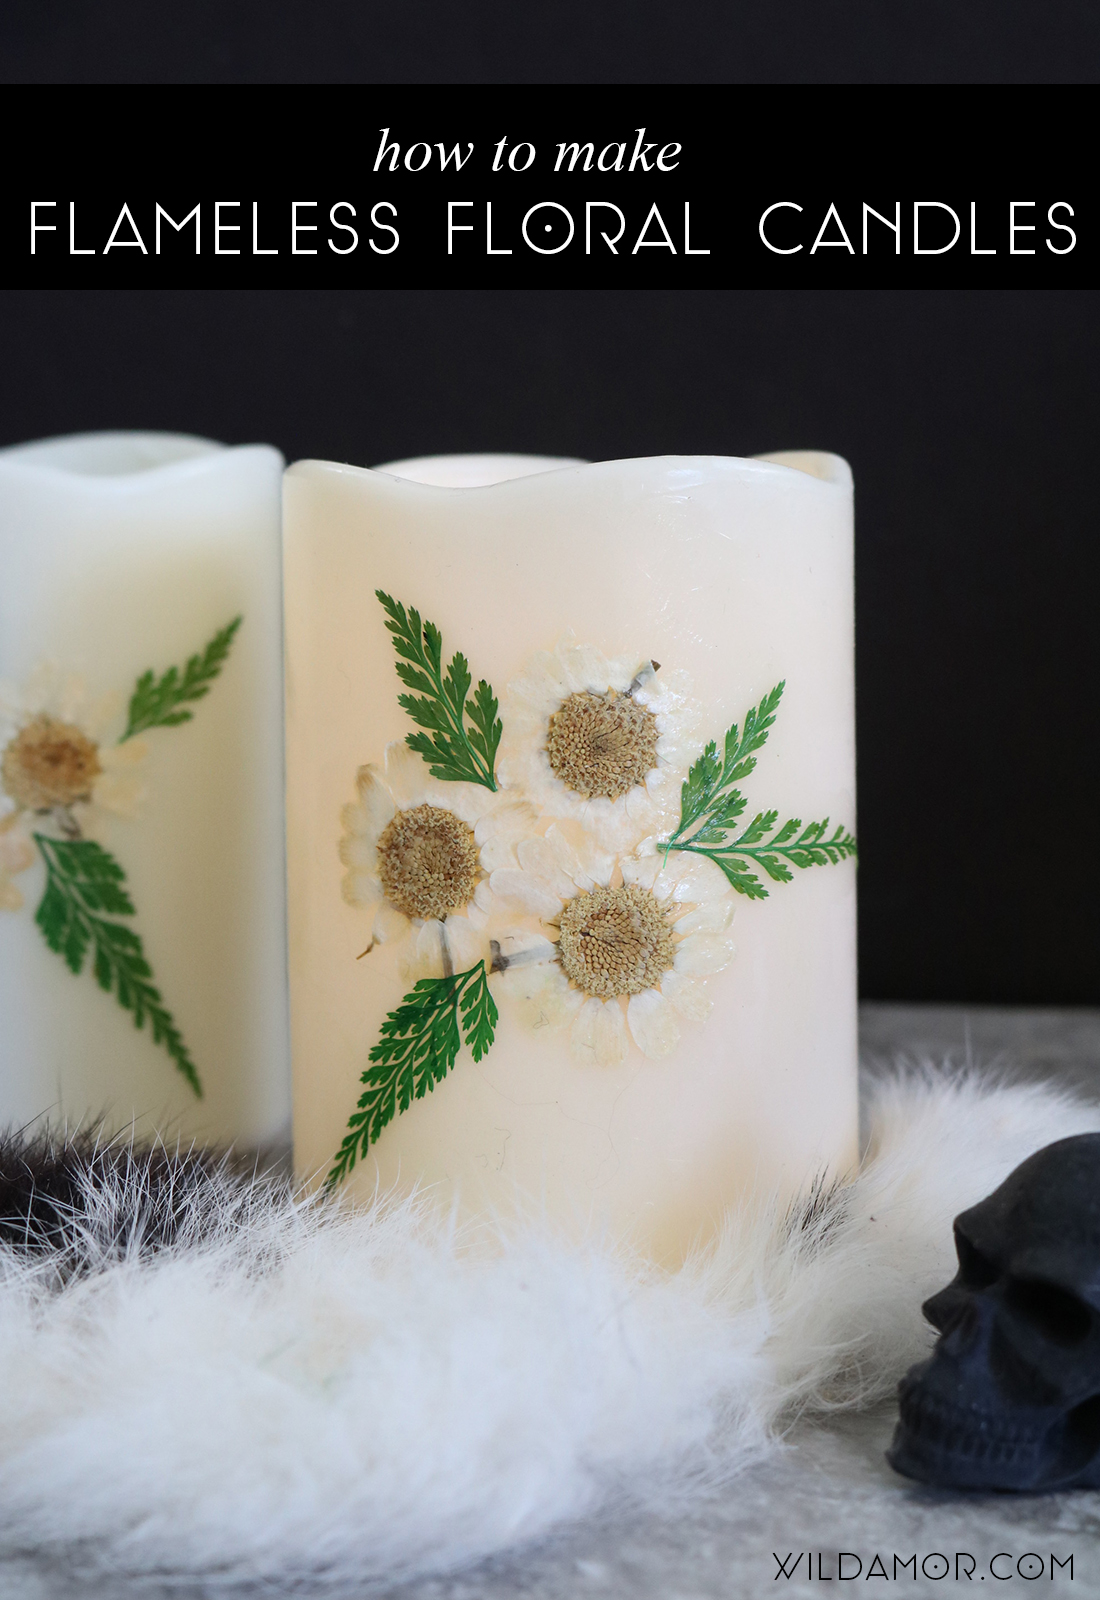 Flameless Floral Candle DIY 07